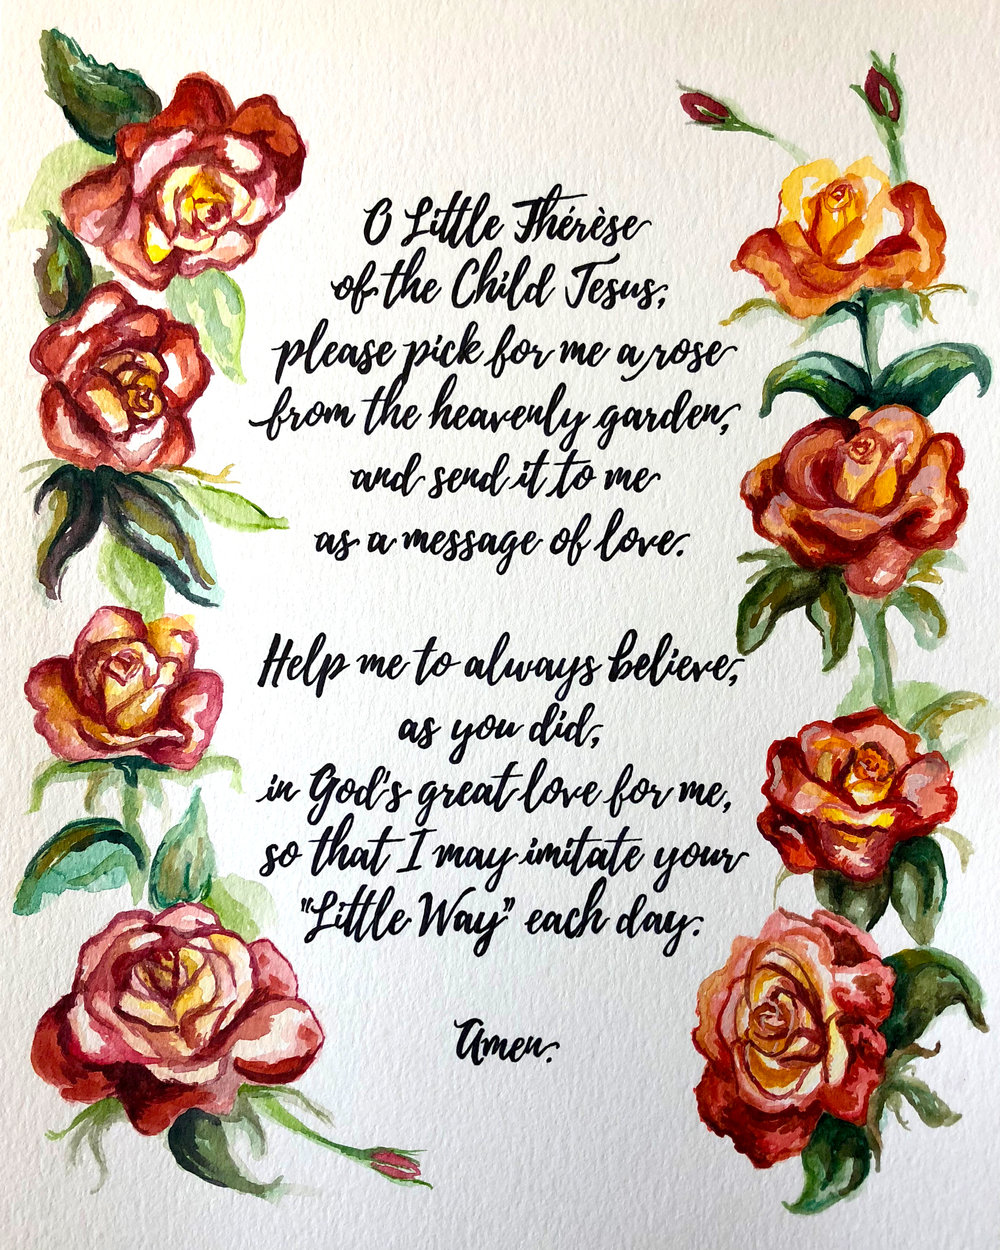 therese prayer 8x10.jpg